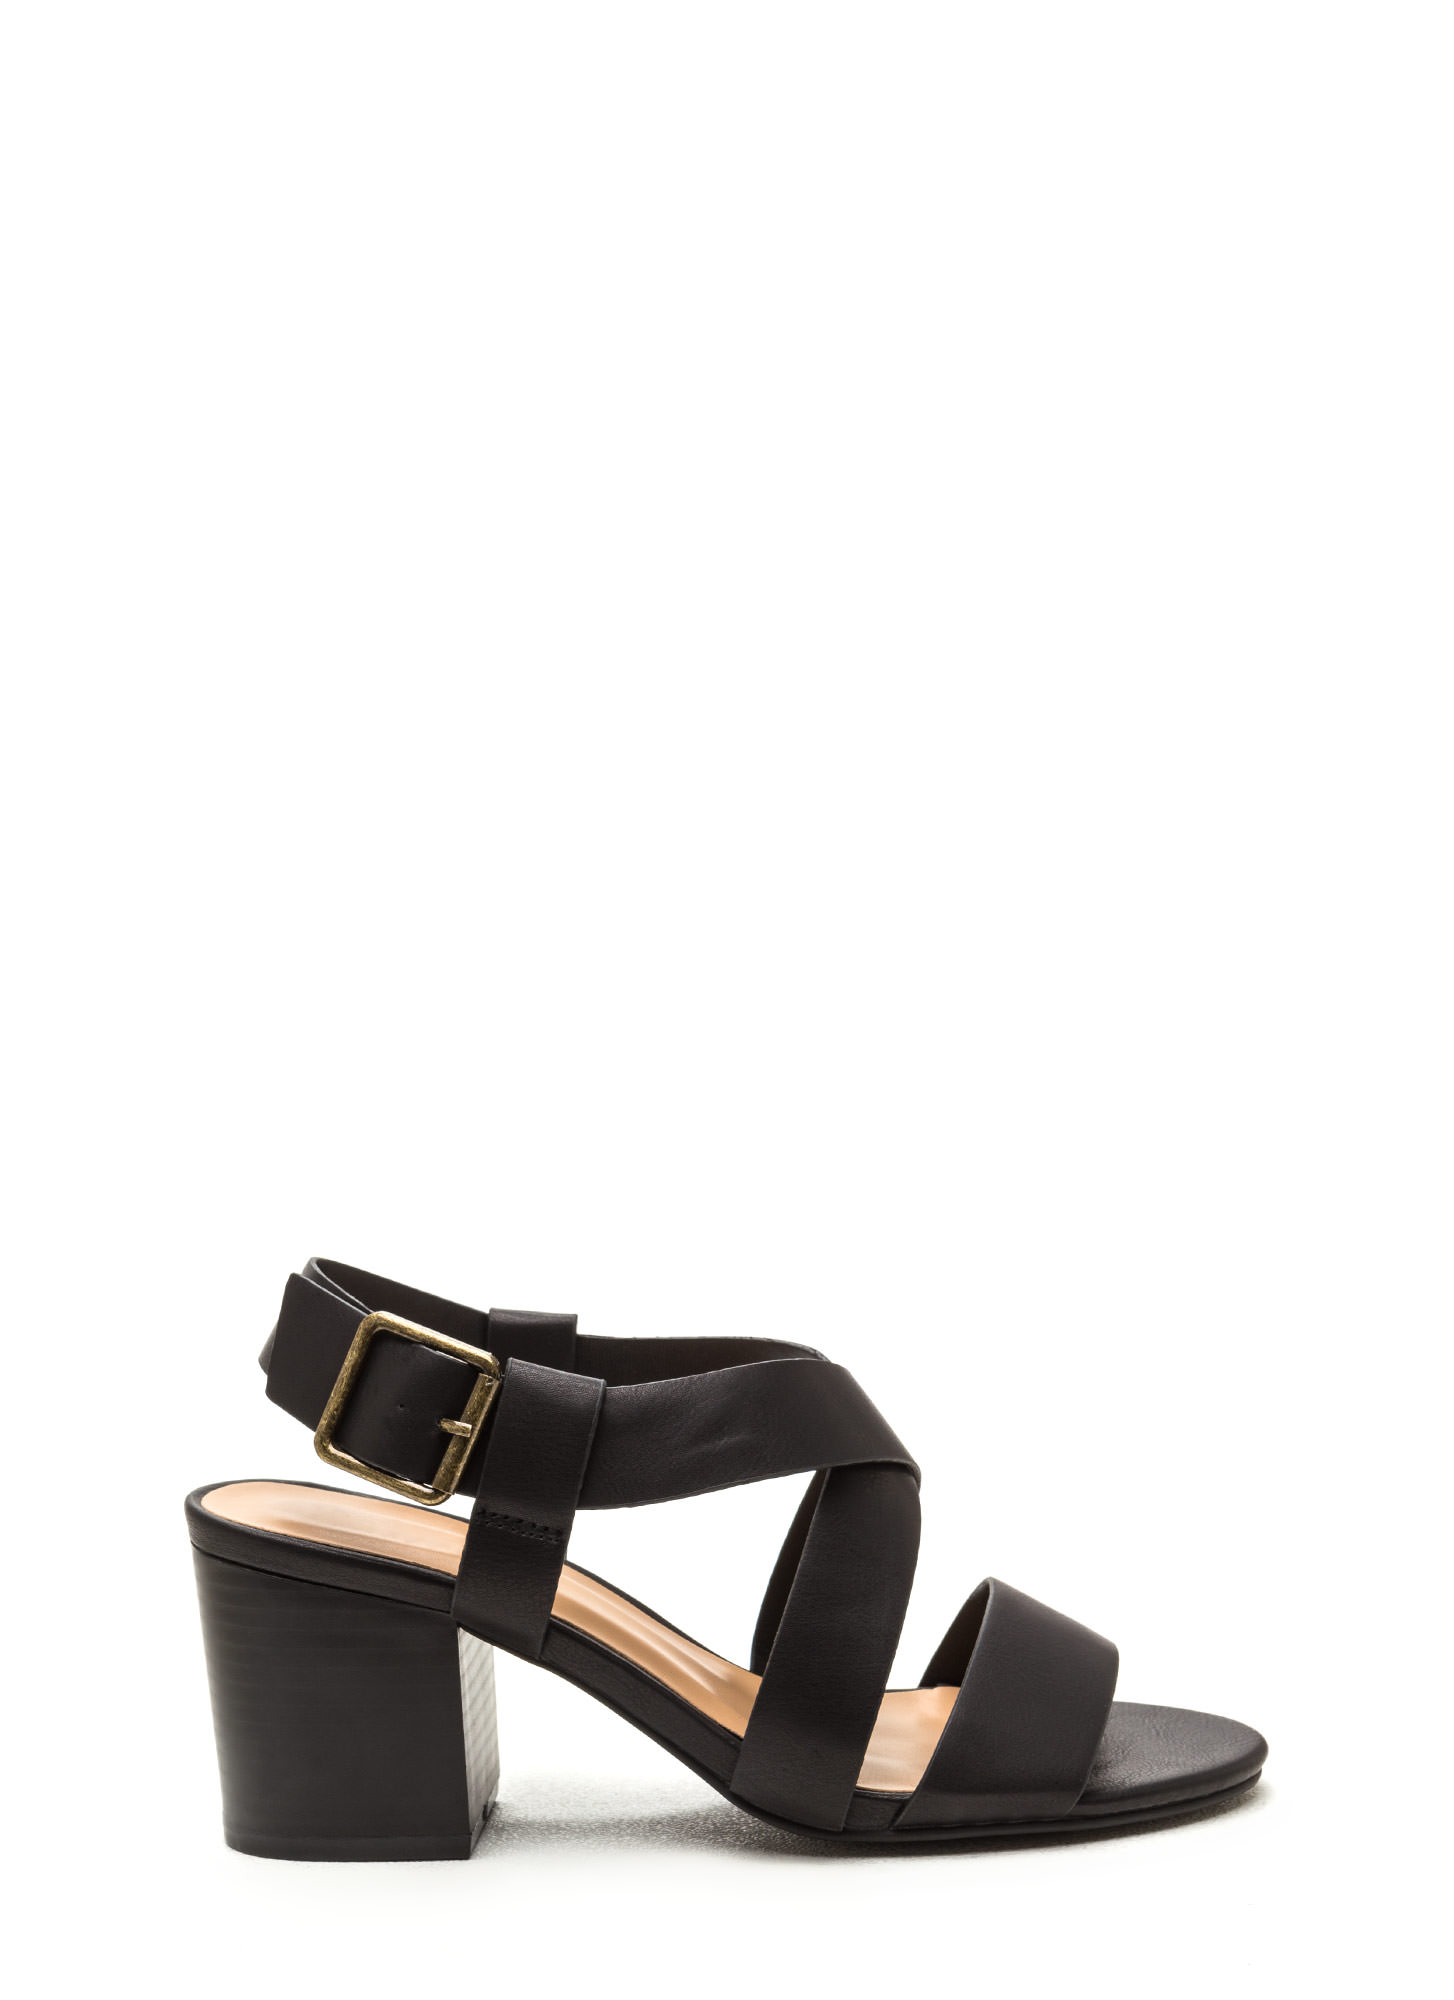 Around The Block Strappy Chunky Heels BLACK